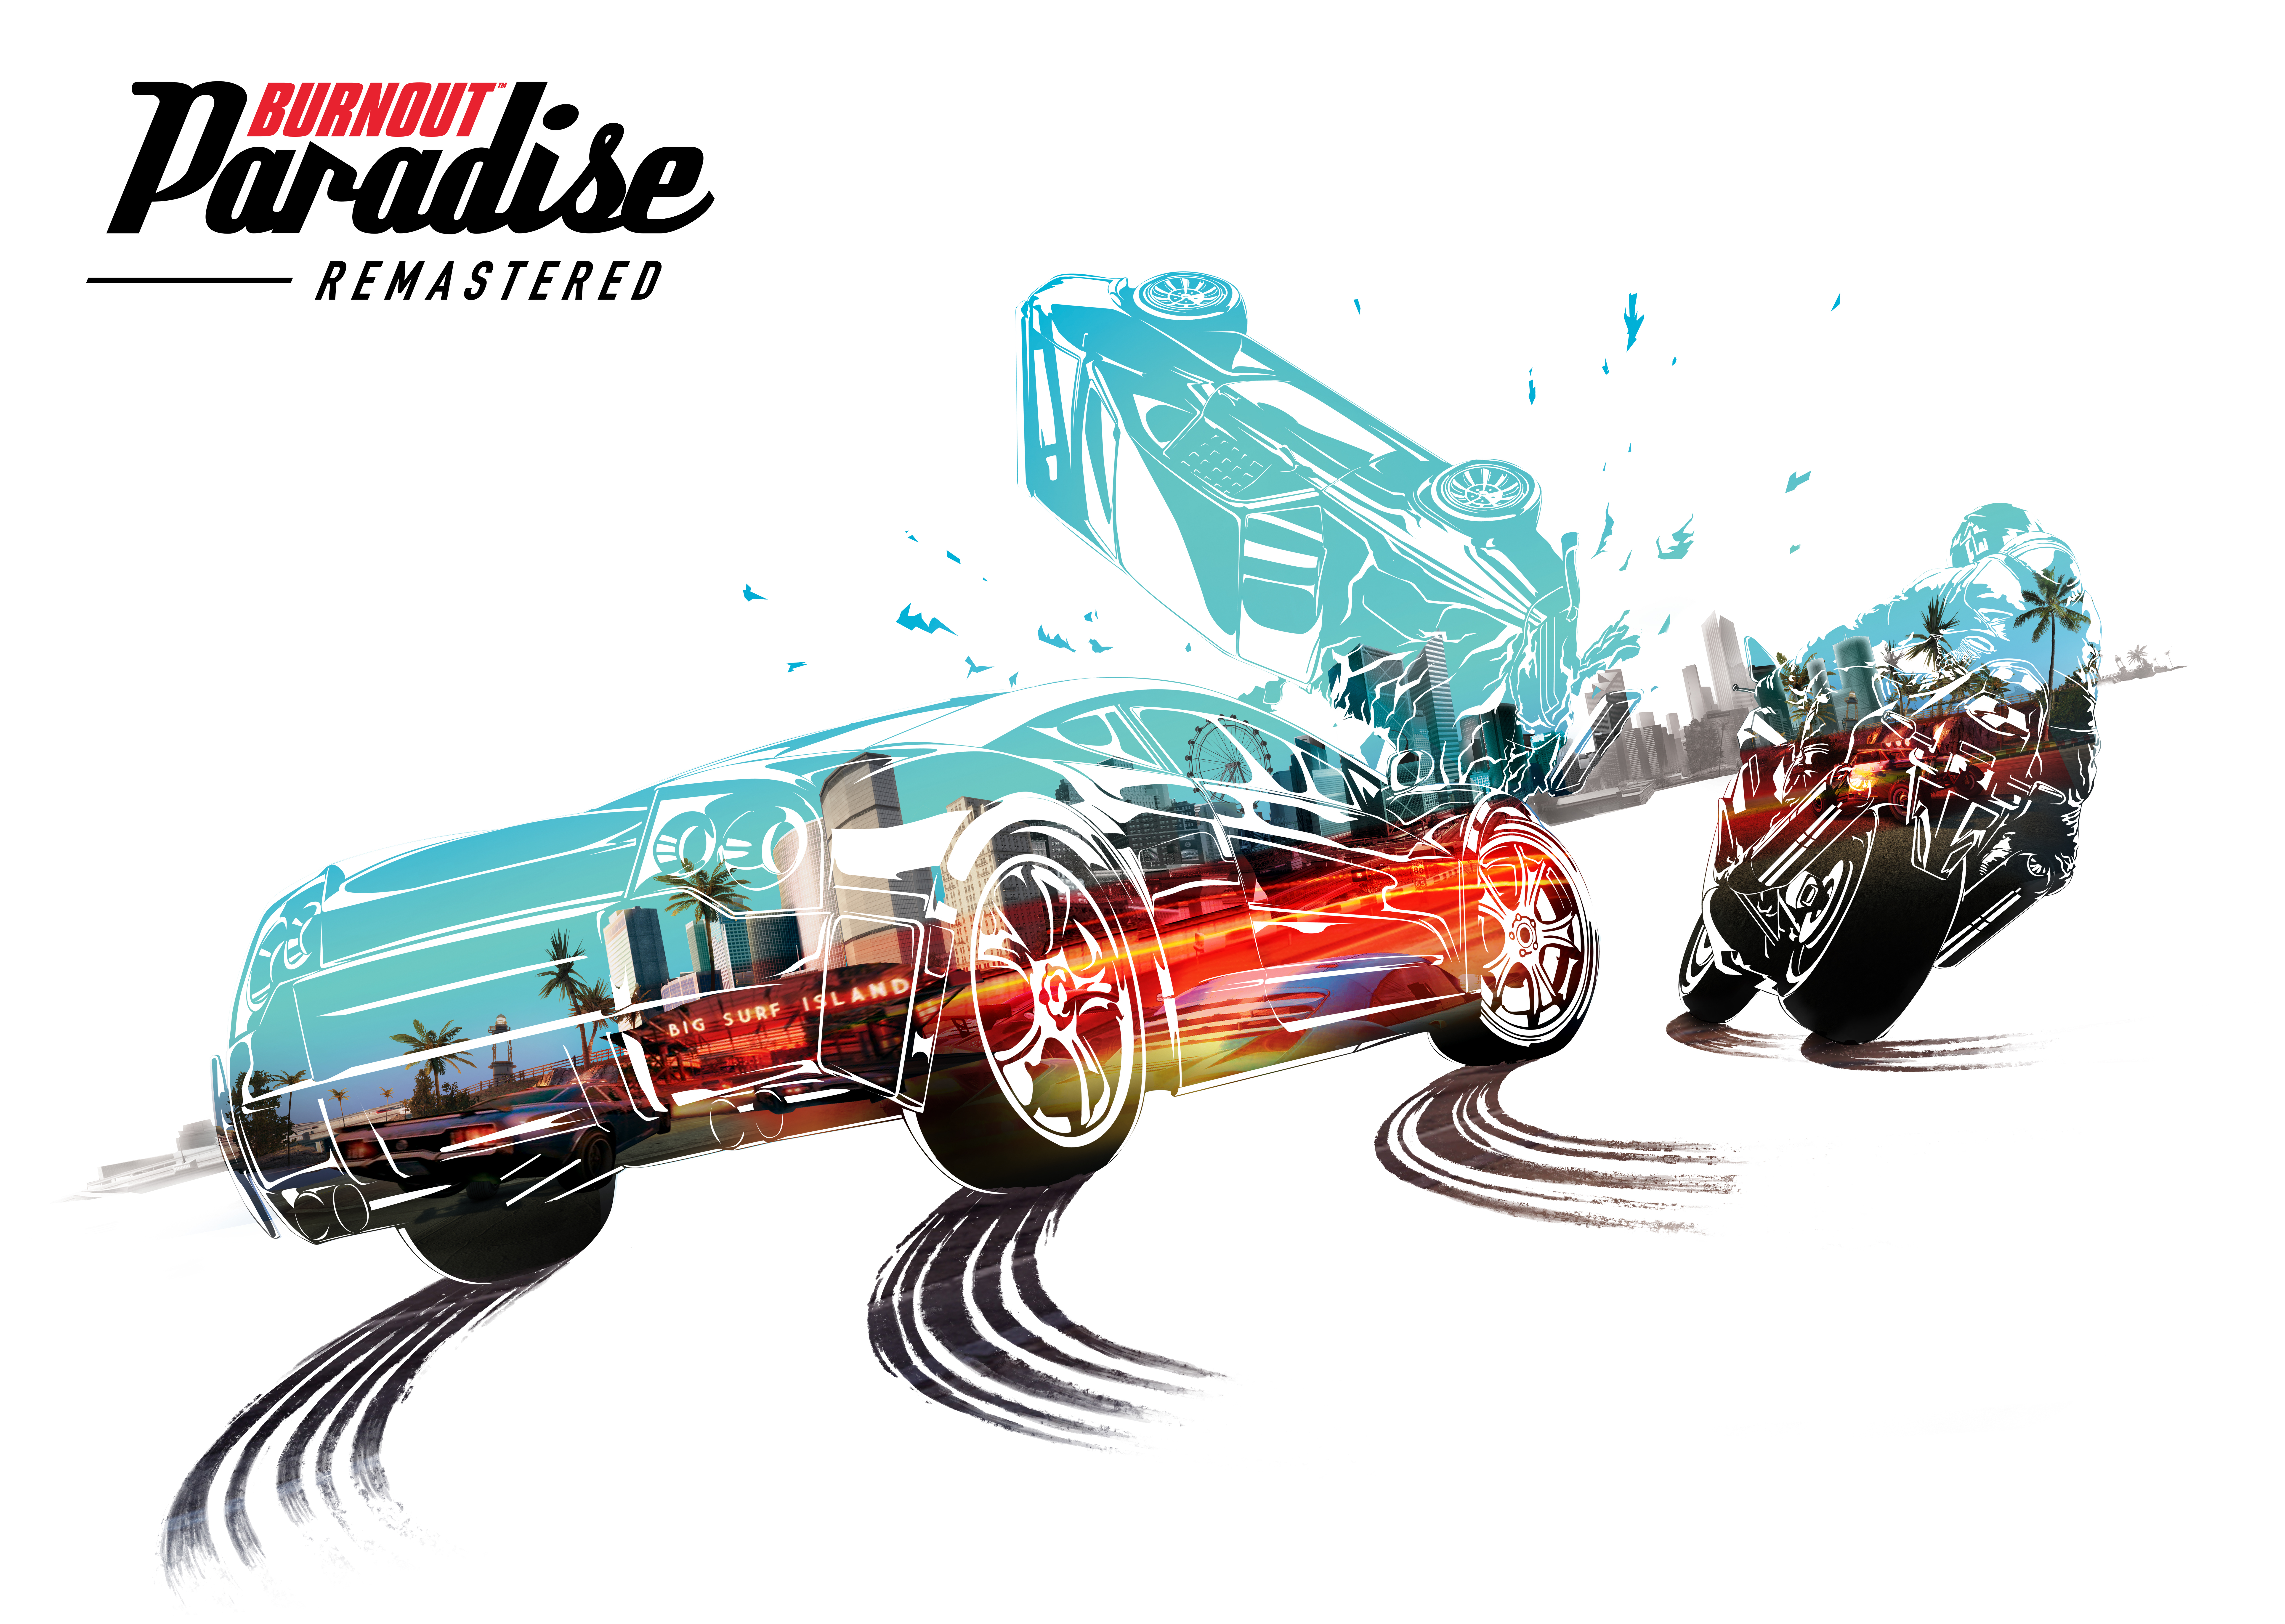 News - Burnout Paradise Remastered Release Date